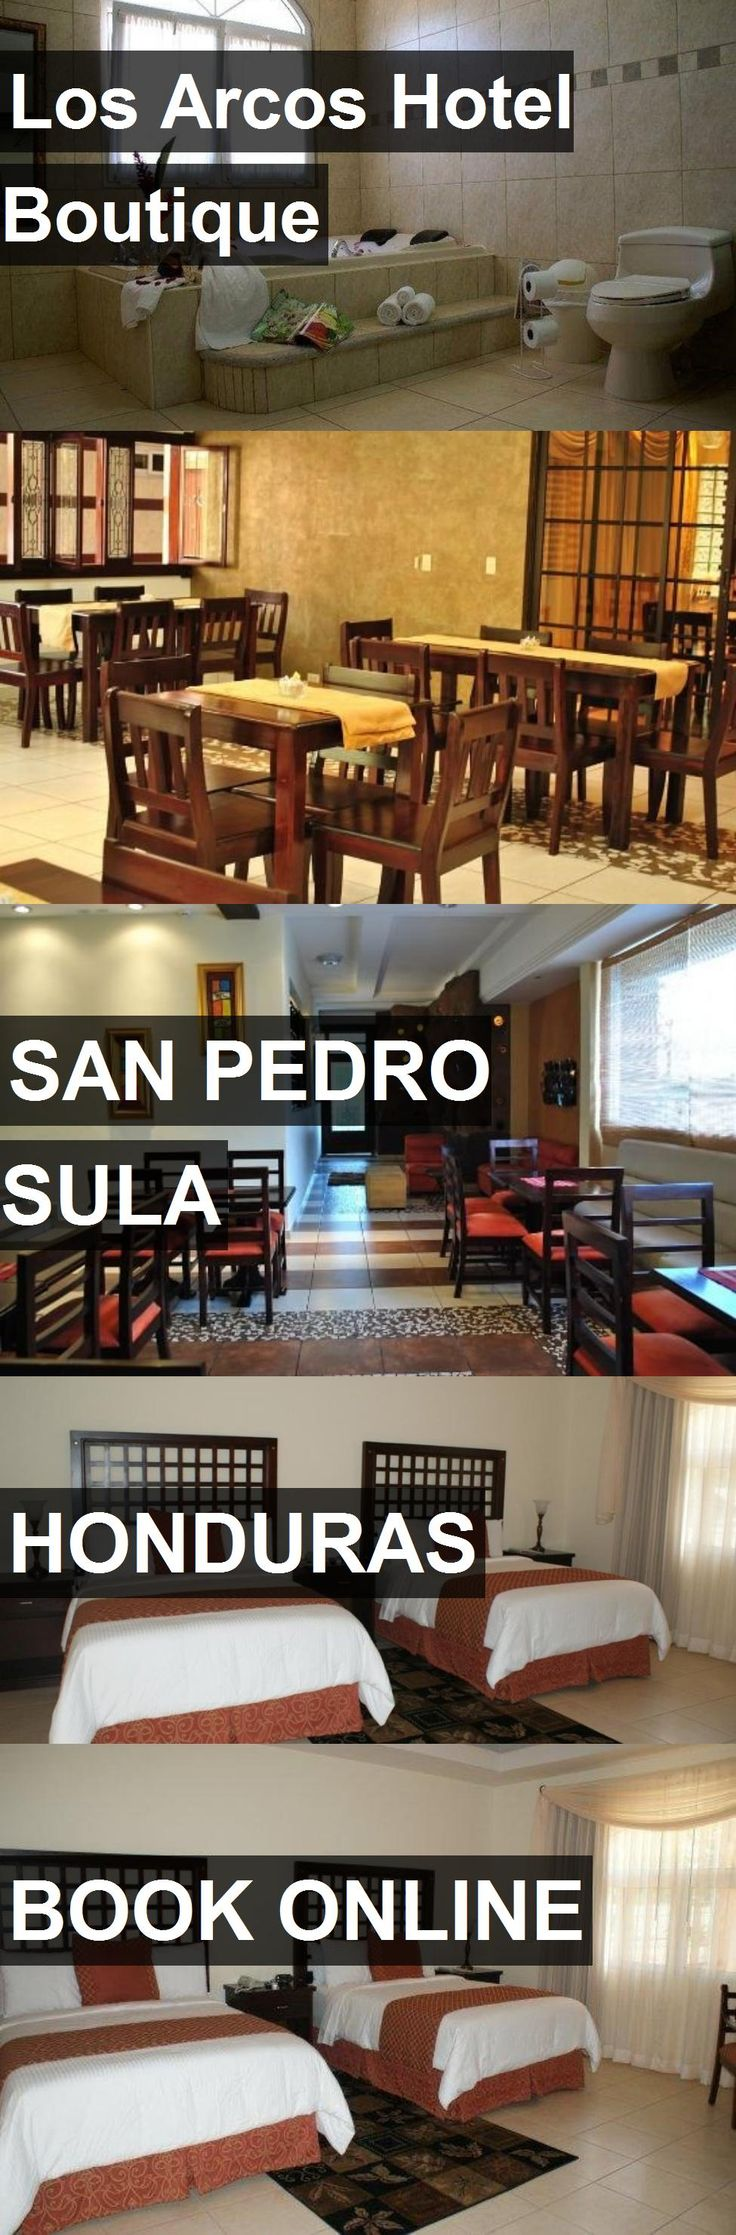 Los Arcos Hotel Boutique in San Pedro Sula, Honduras. For more information, photos, reviews and best prices please follow the link. #Honduras #SanPedroSula #travel #vacation #hotel